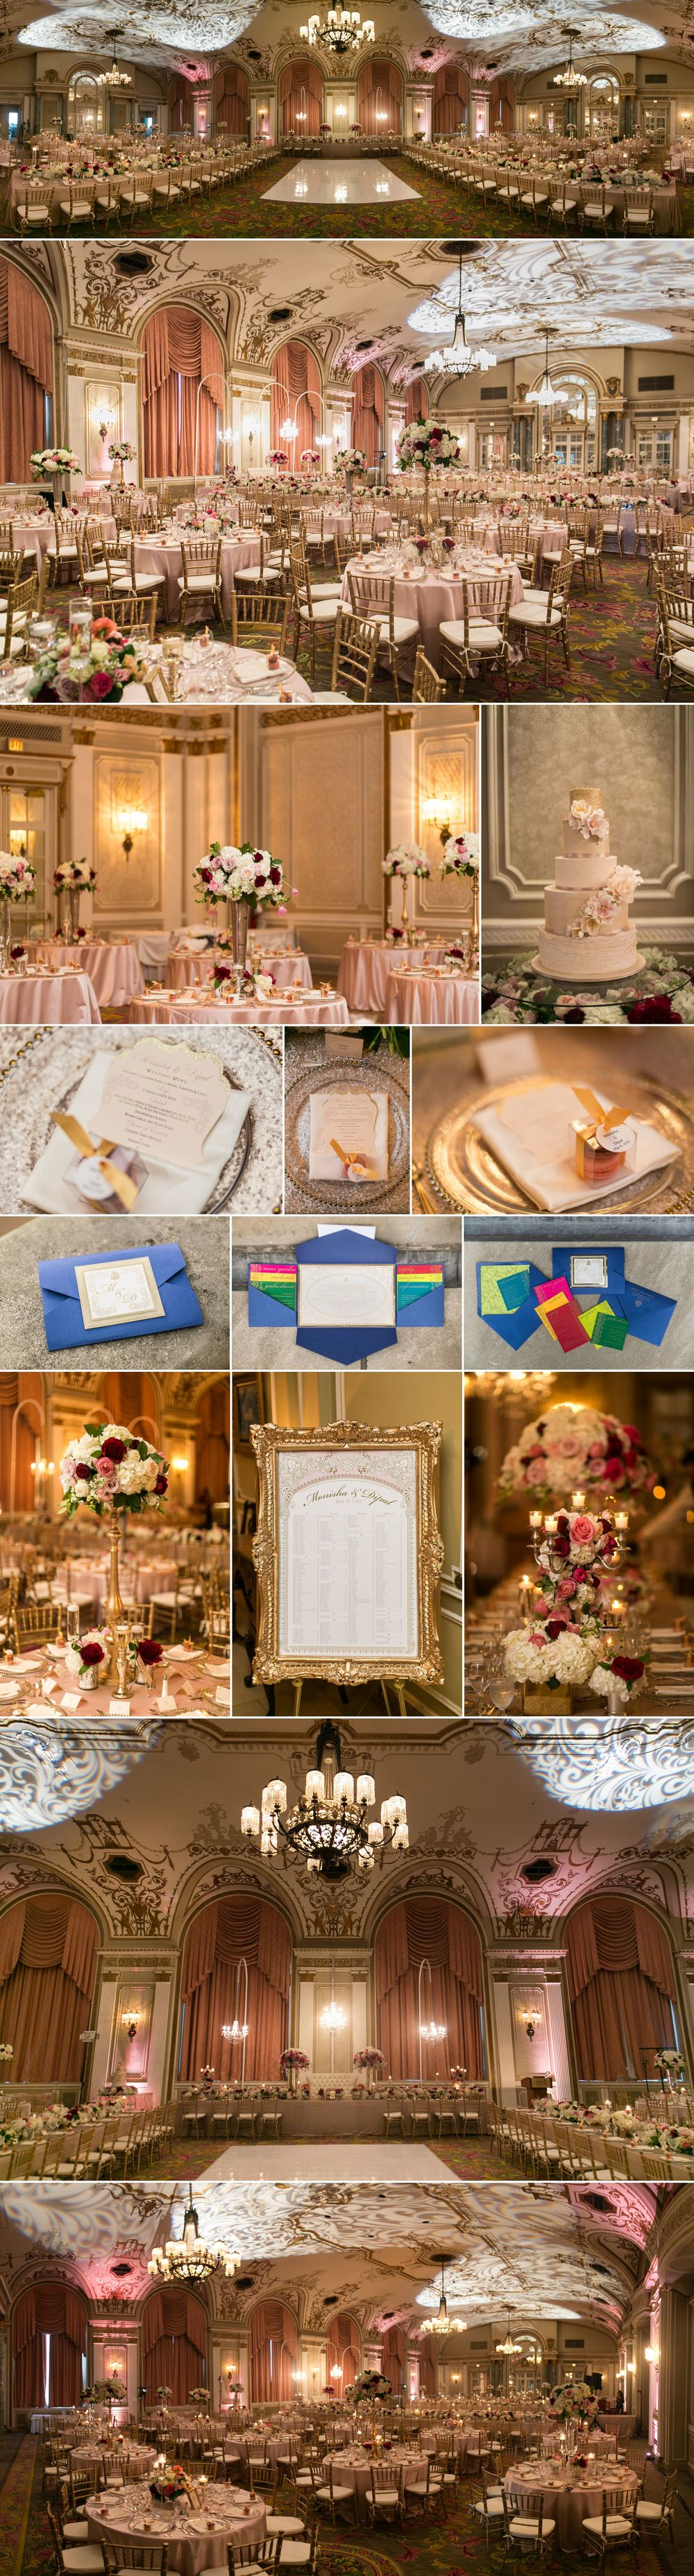 Wedding details and decor in the ballroom at le chateau laurier in ottawa